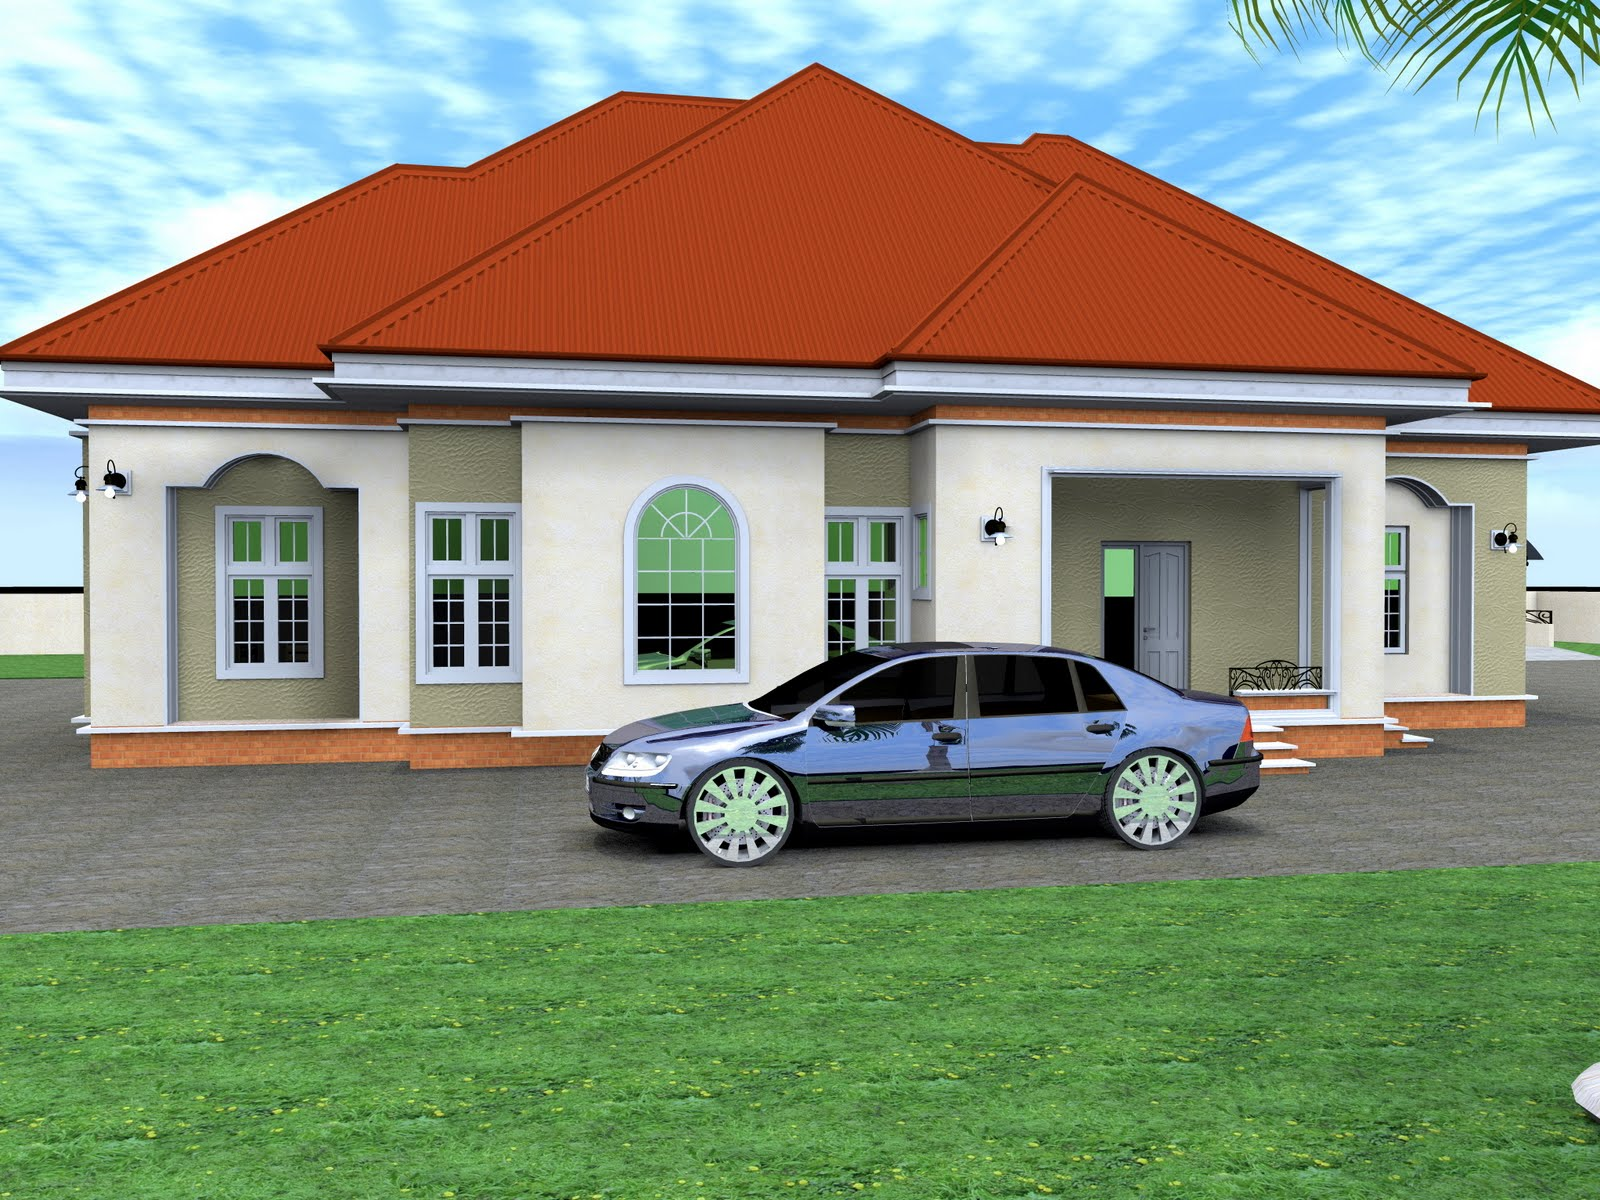 Suzanneshattuckus 6 Bedroom Bungalow House Plans In